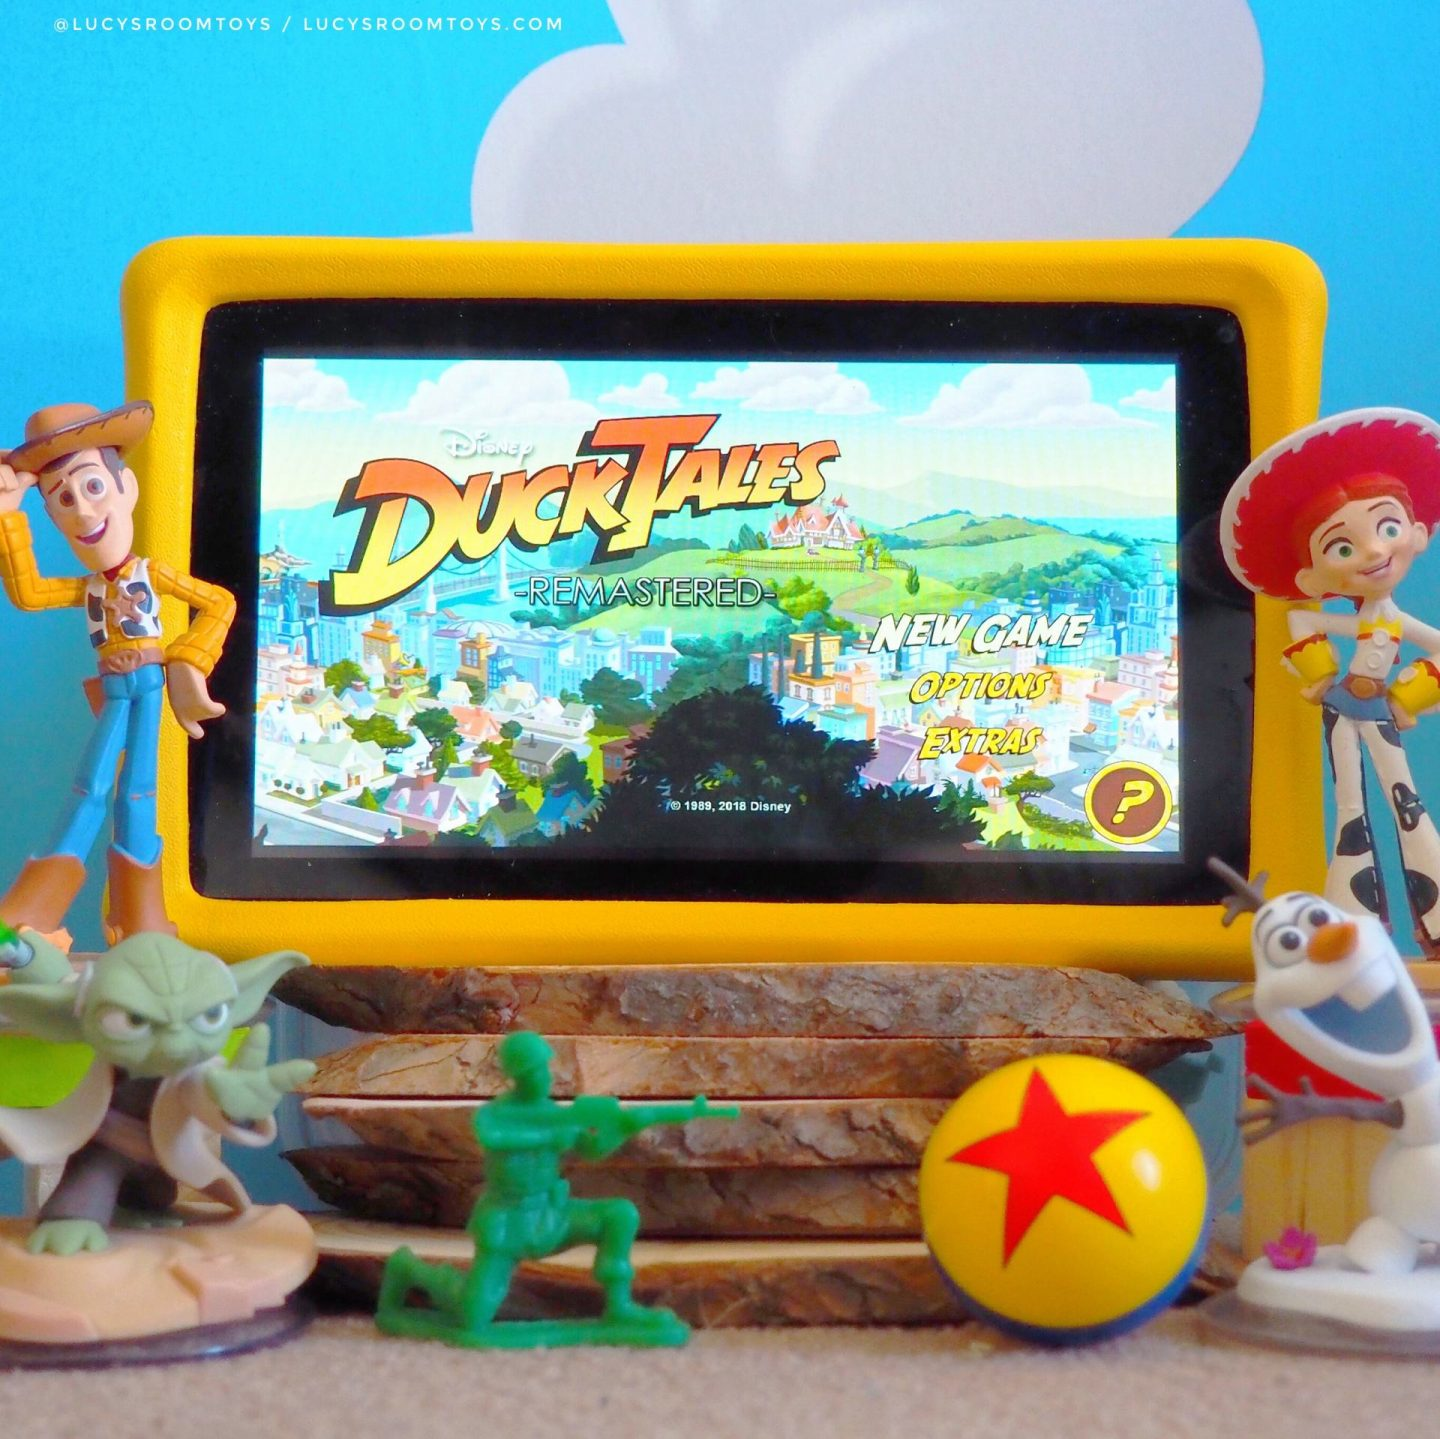 *Ad/PR Sample* PebbleGear Toy Story Tablet – My 10 Fave Games!